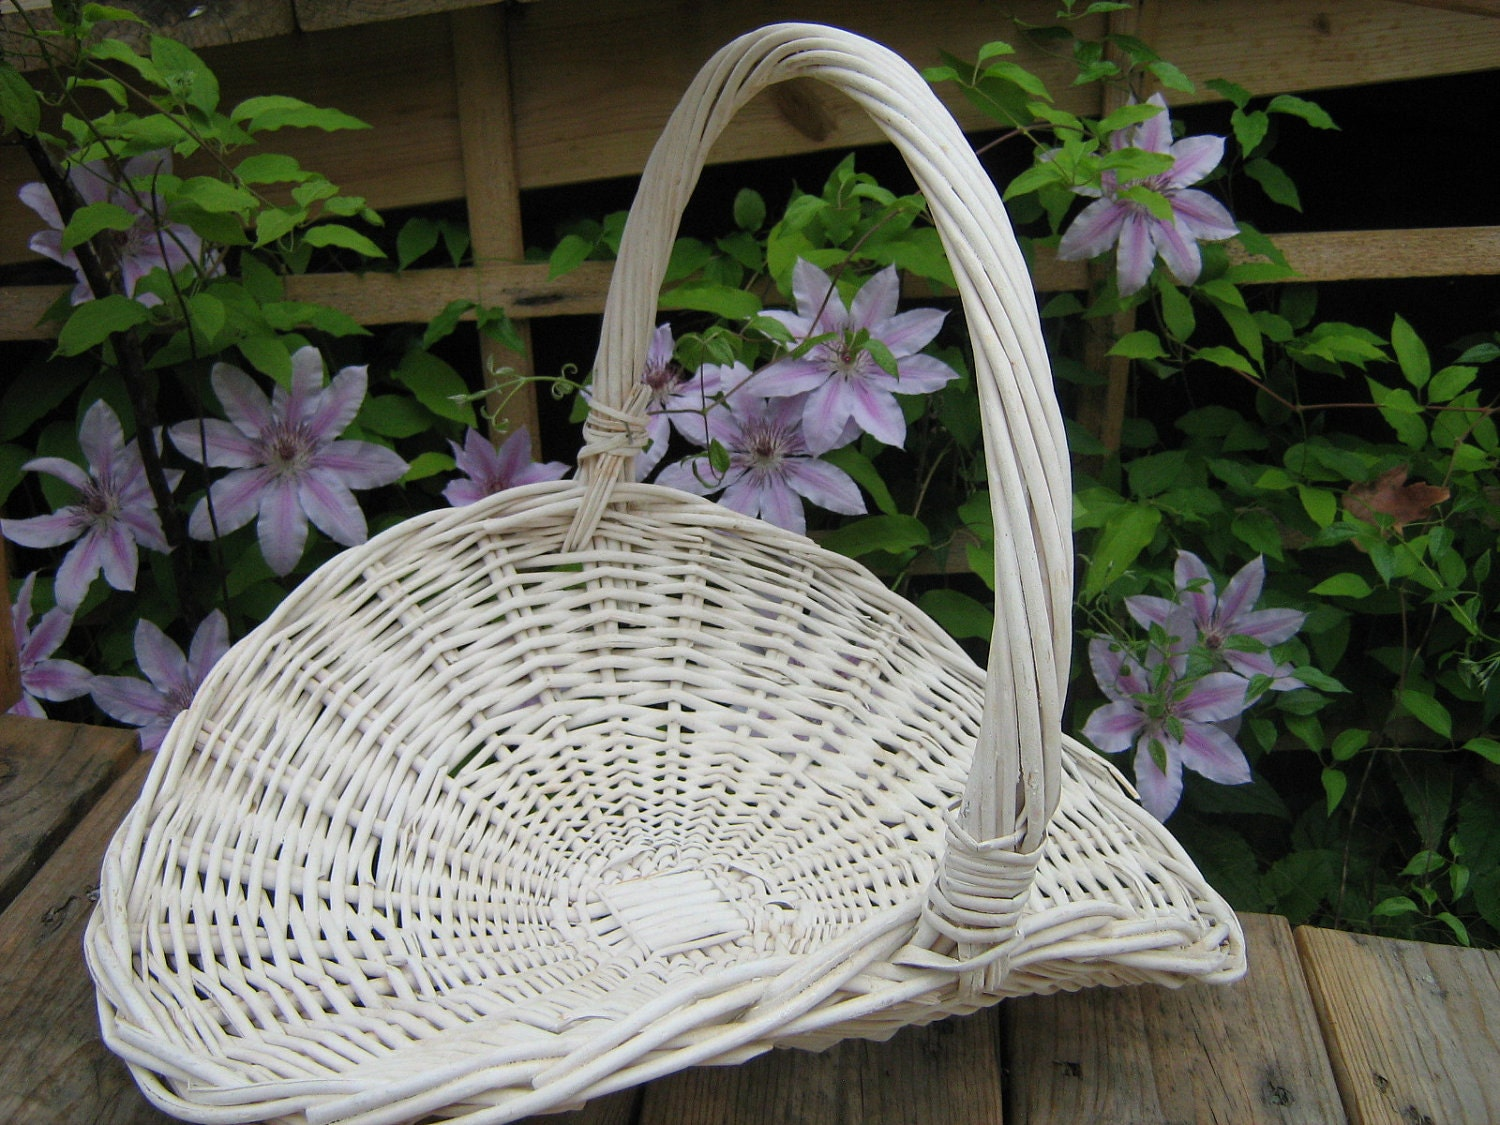 Rattan Flower Baskets : Vintage white wicker flower gathering basket by